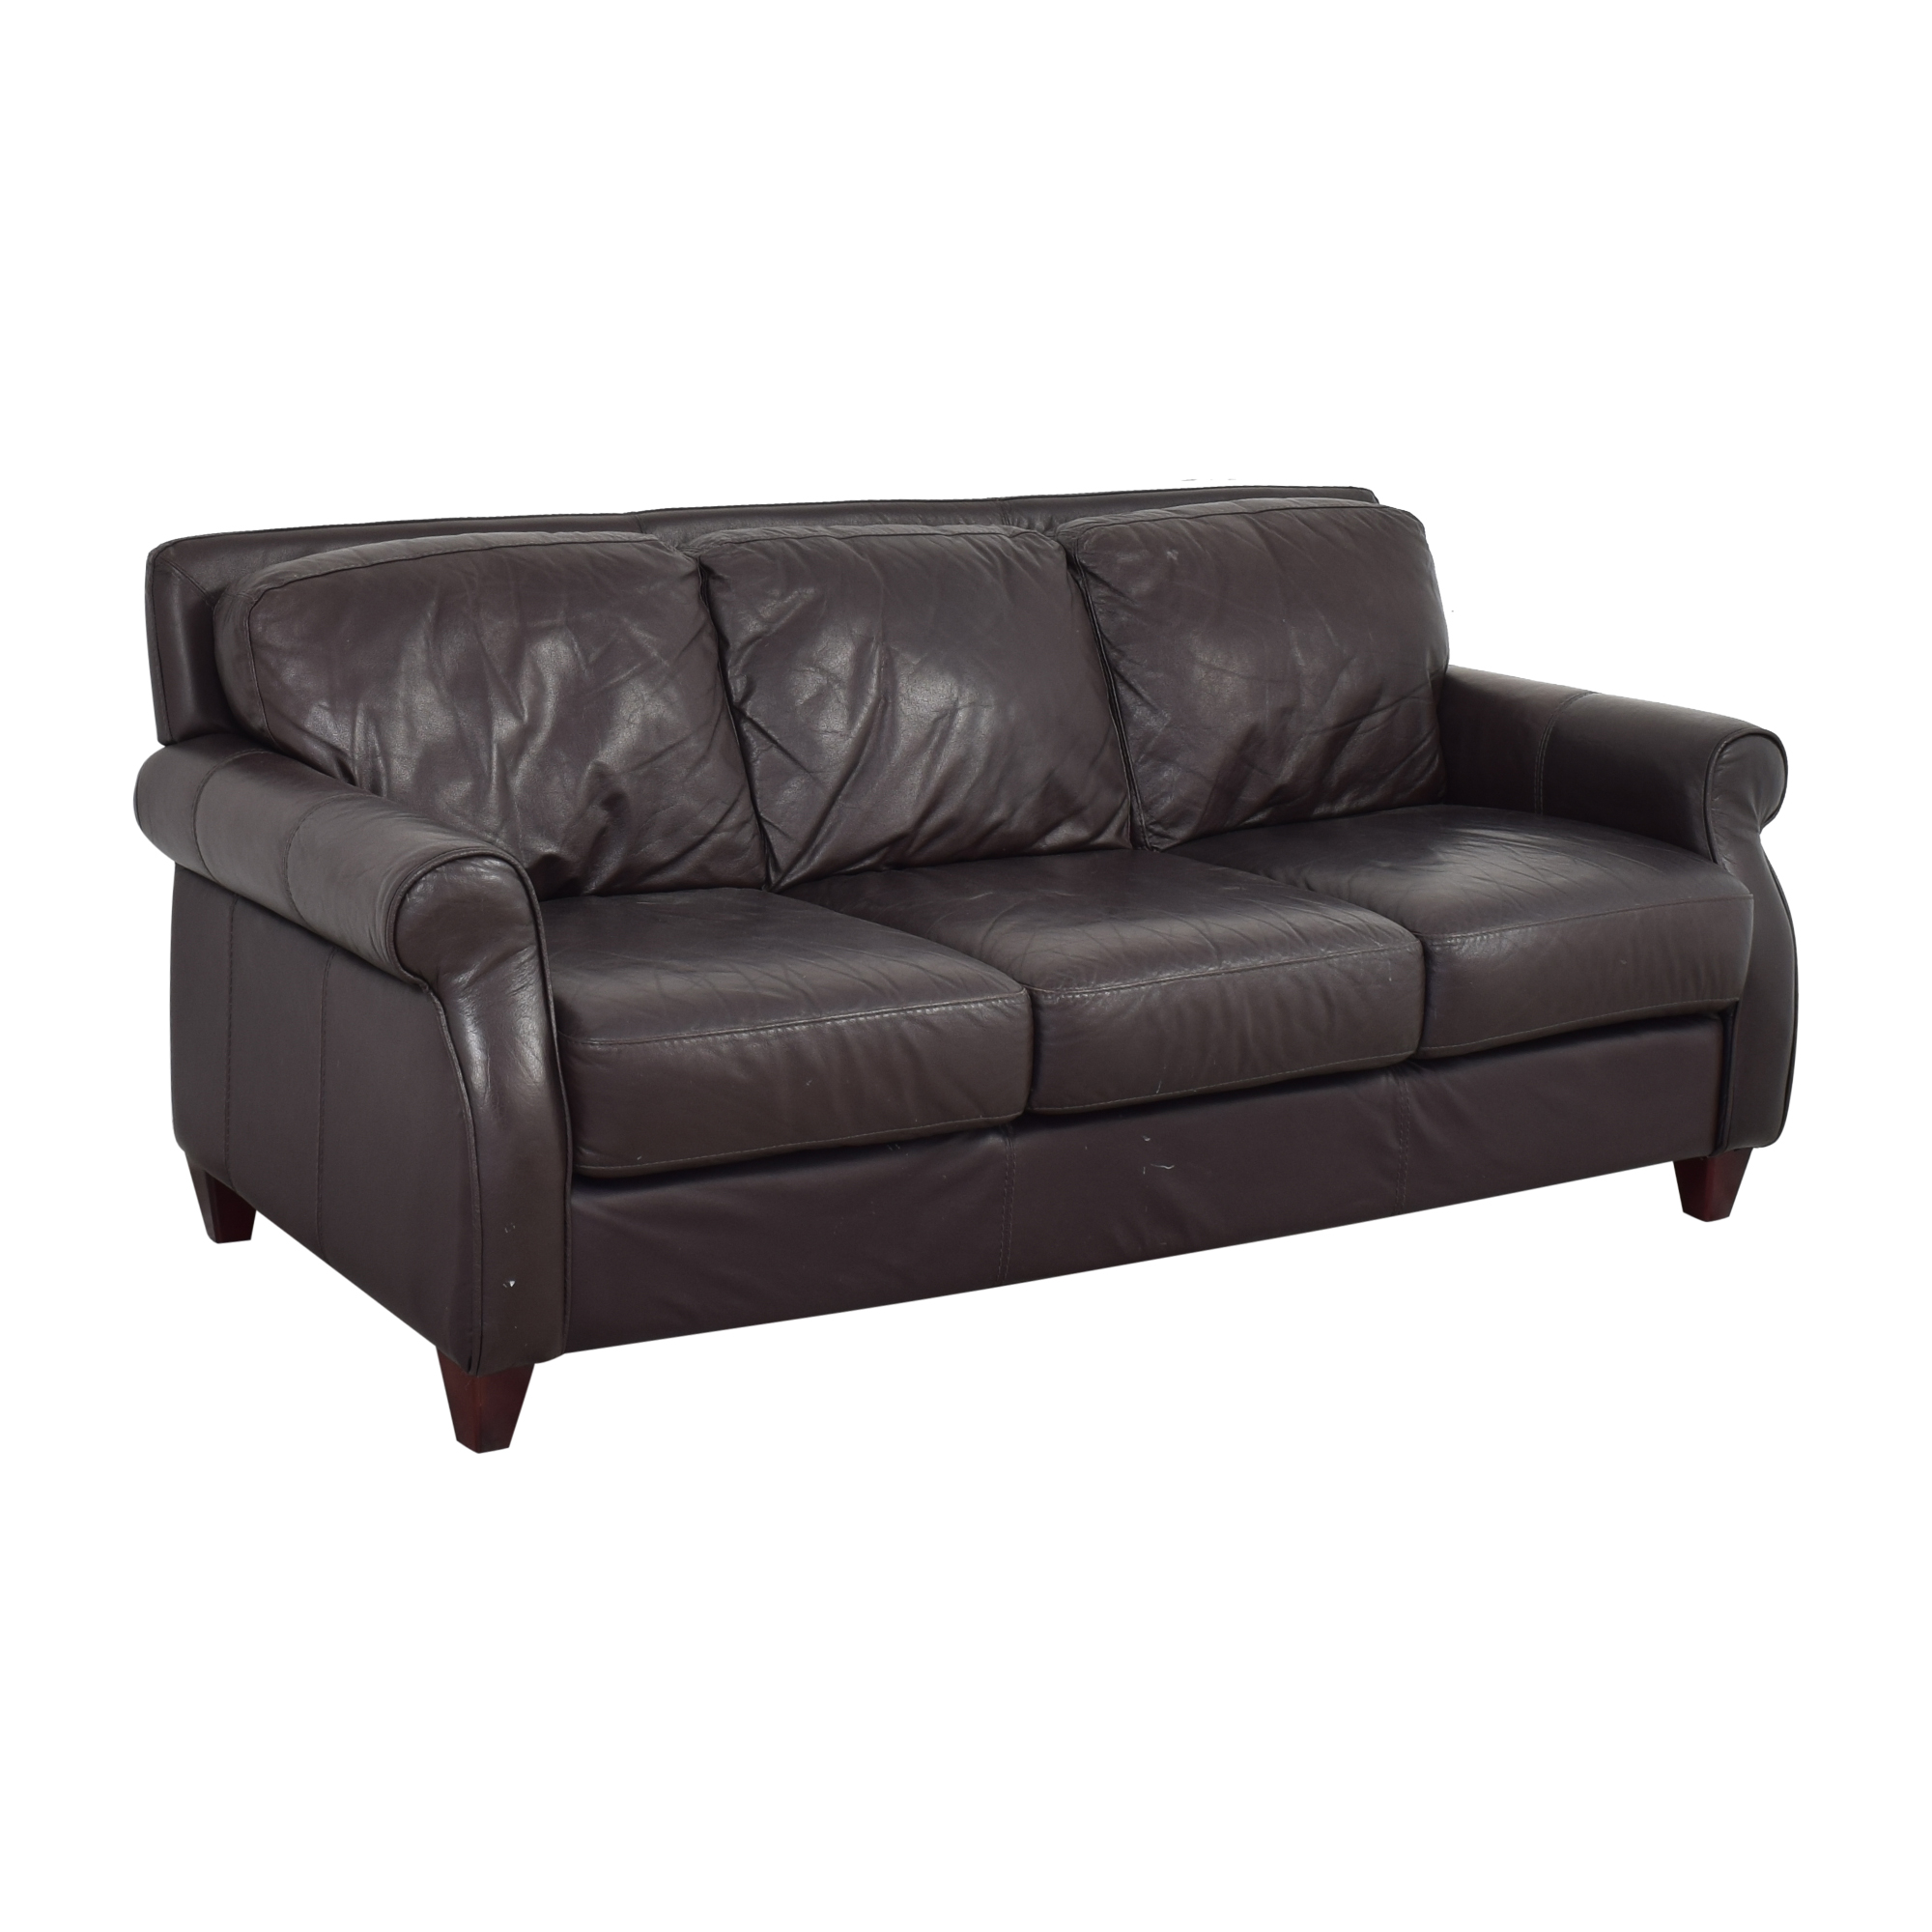 Raymour & Flanigan Raymour & Flanigan Roll Arm Sofa coupon